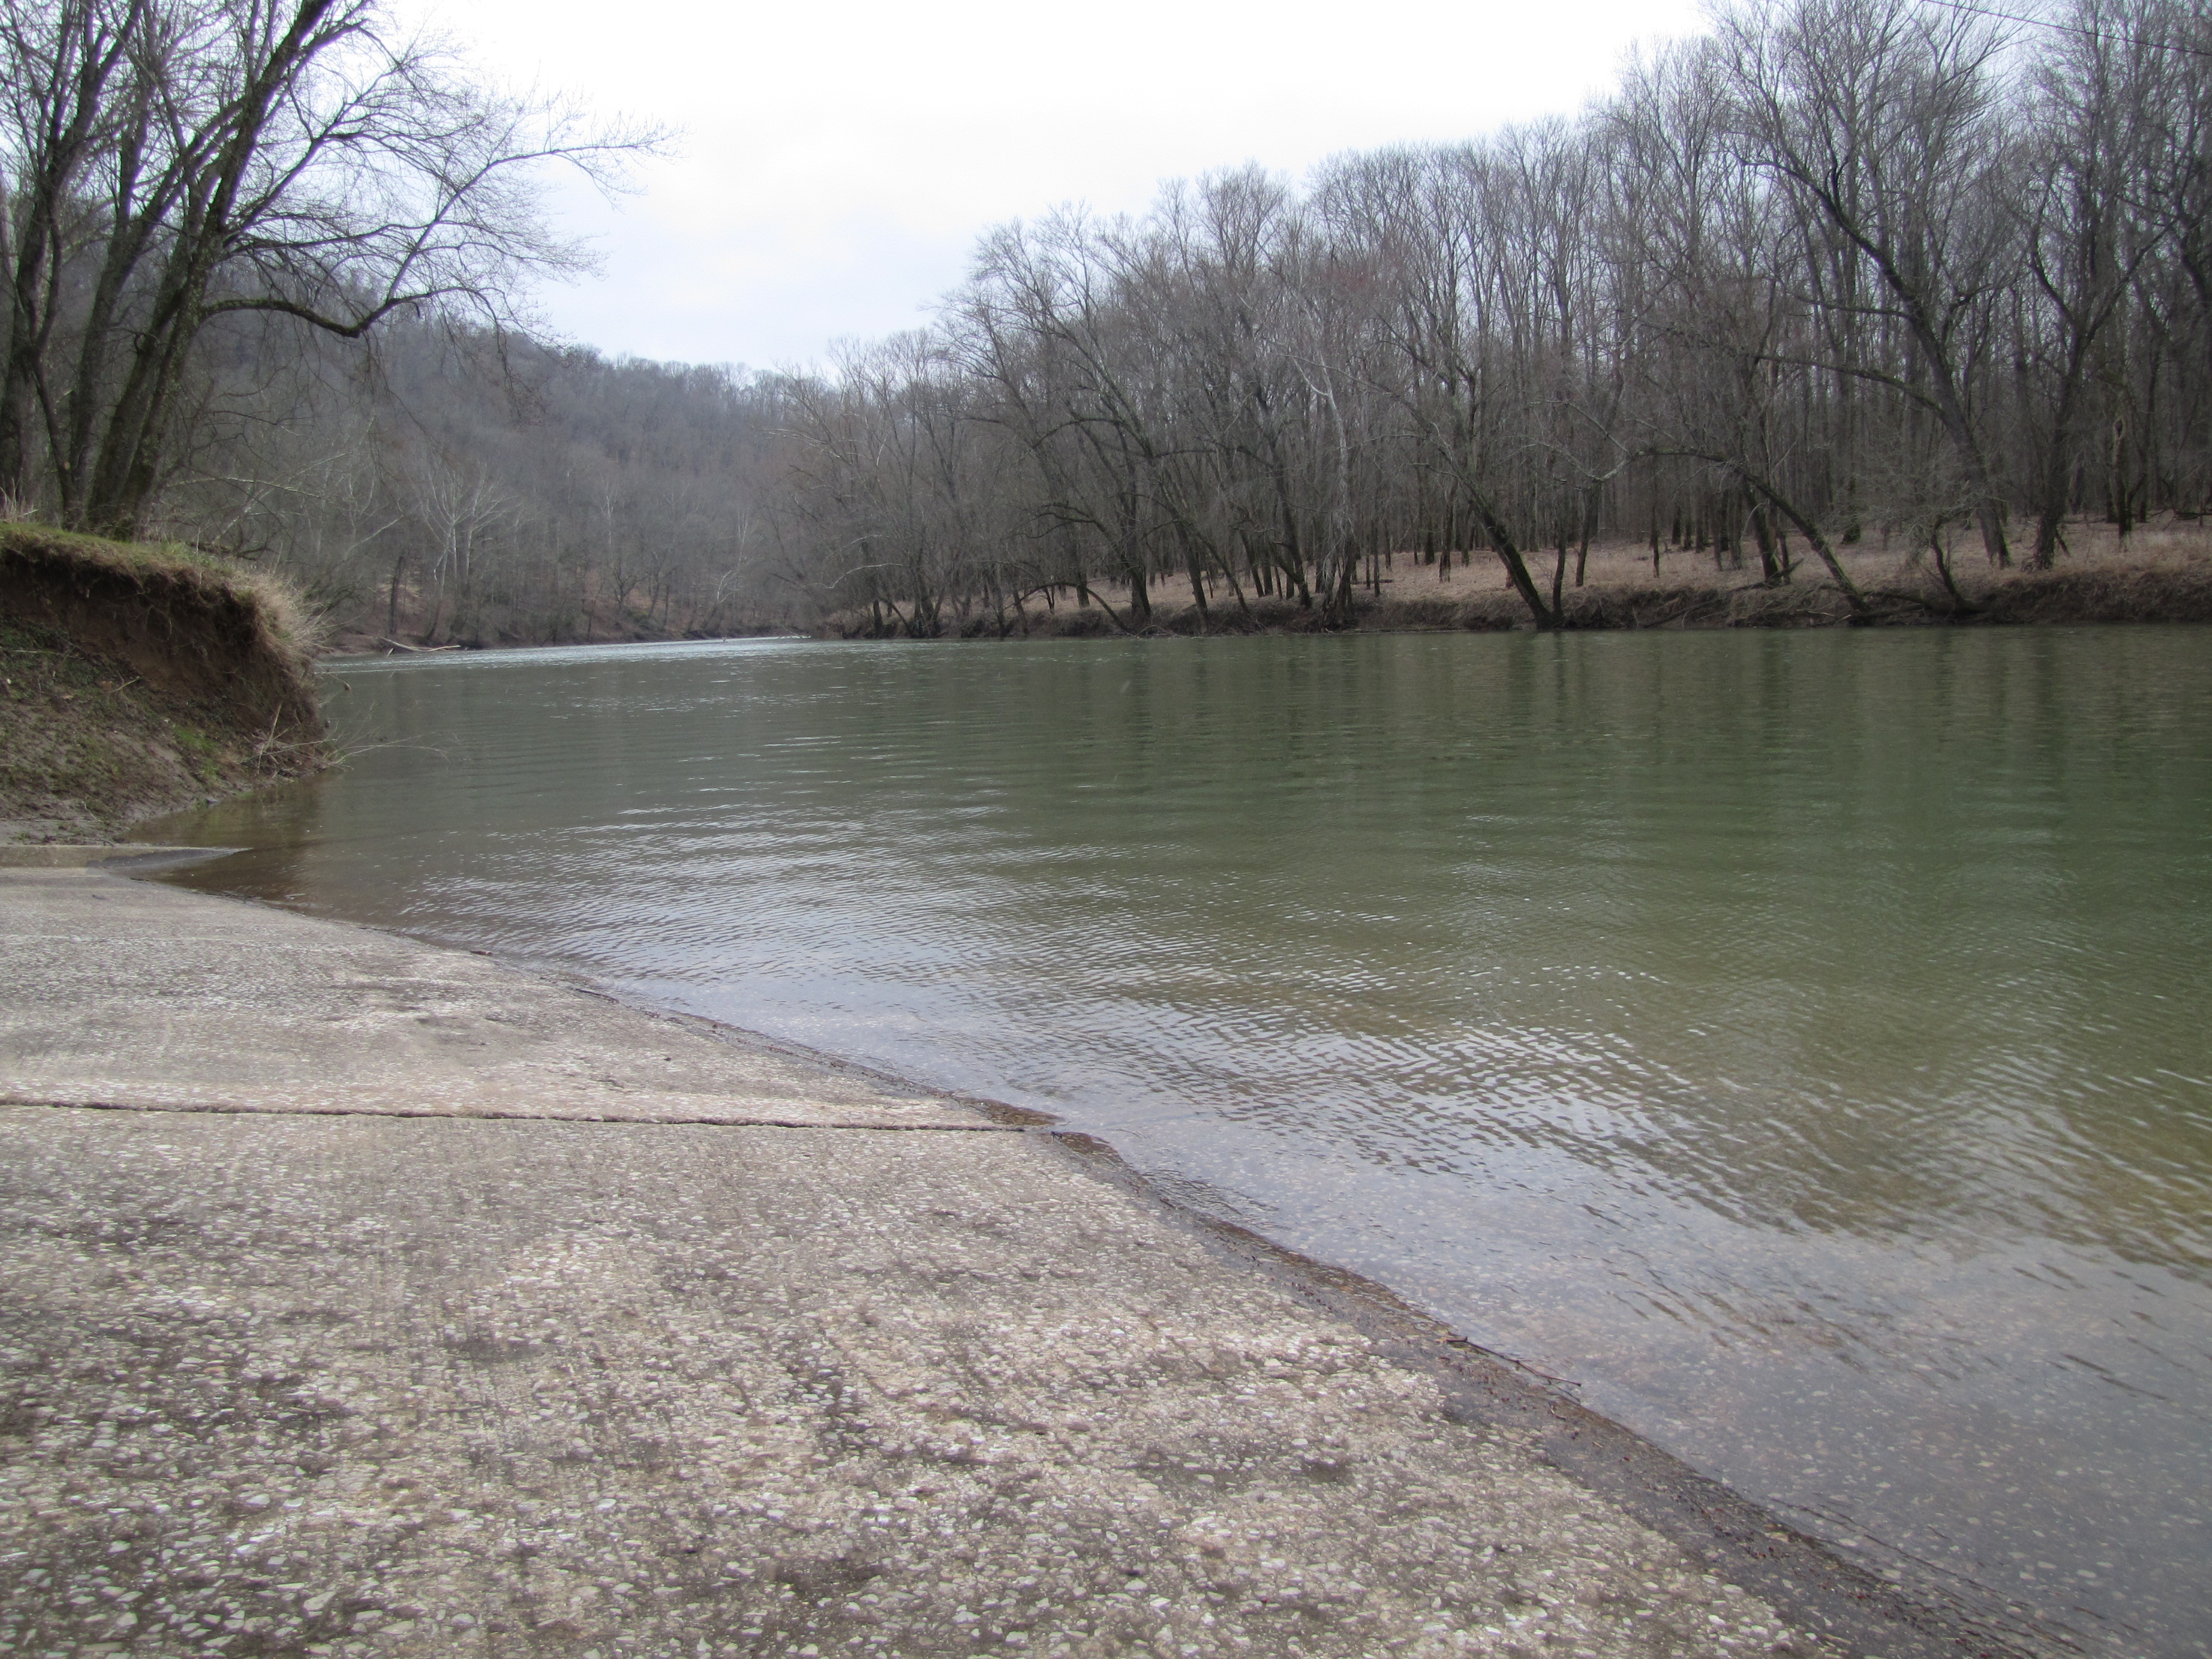 Houchins Ferry, located in Mammoth Cave National Park, provides boaters with access to the river.  A camp ground and picnic shelter is located at the ferry crossing.